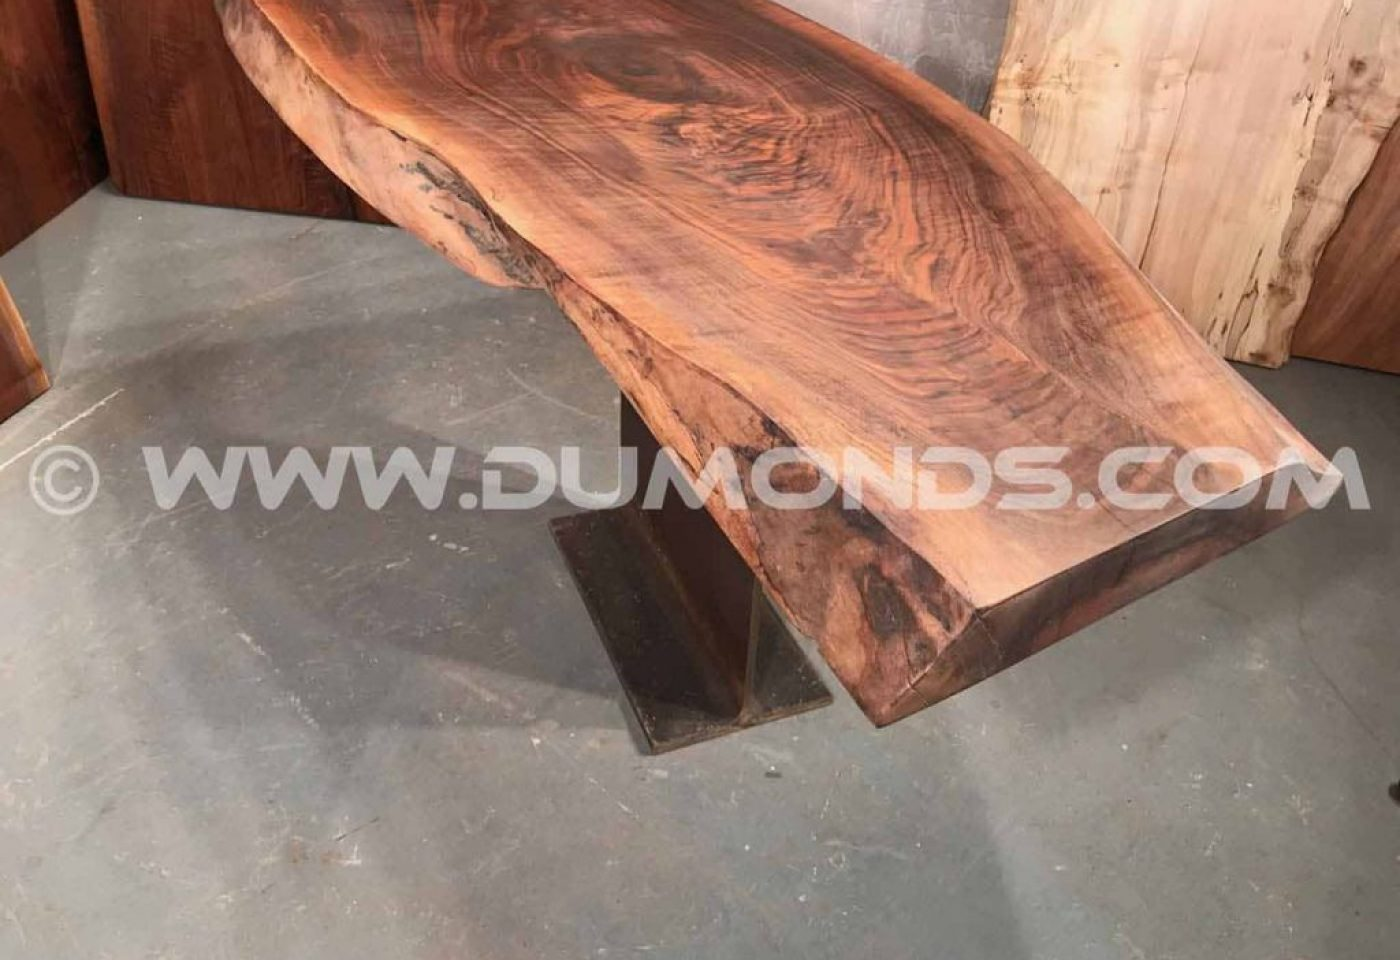 CURLY WALNUT TABLE WITH STEEL I-BEAM BASE